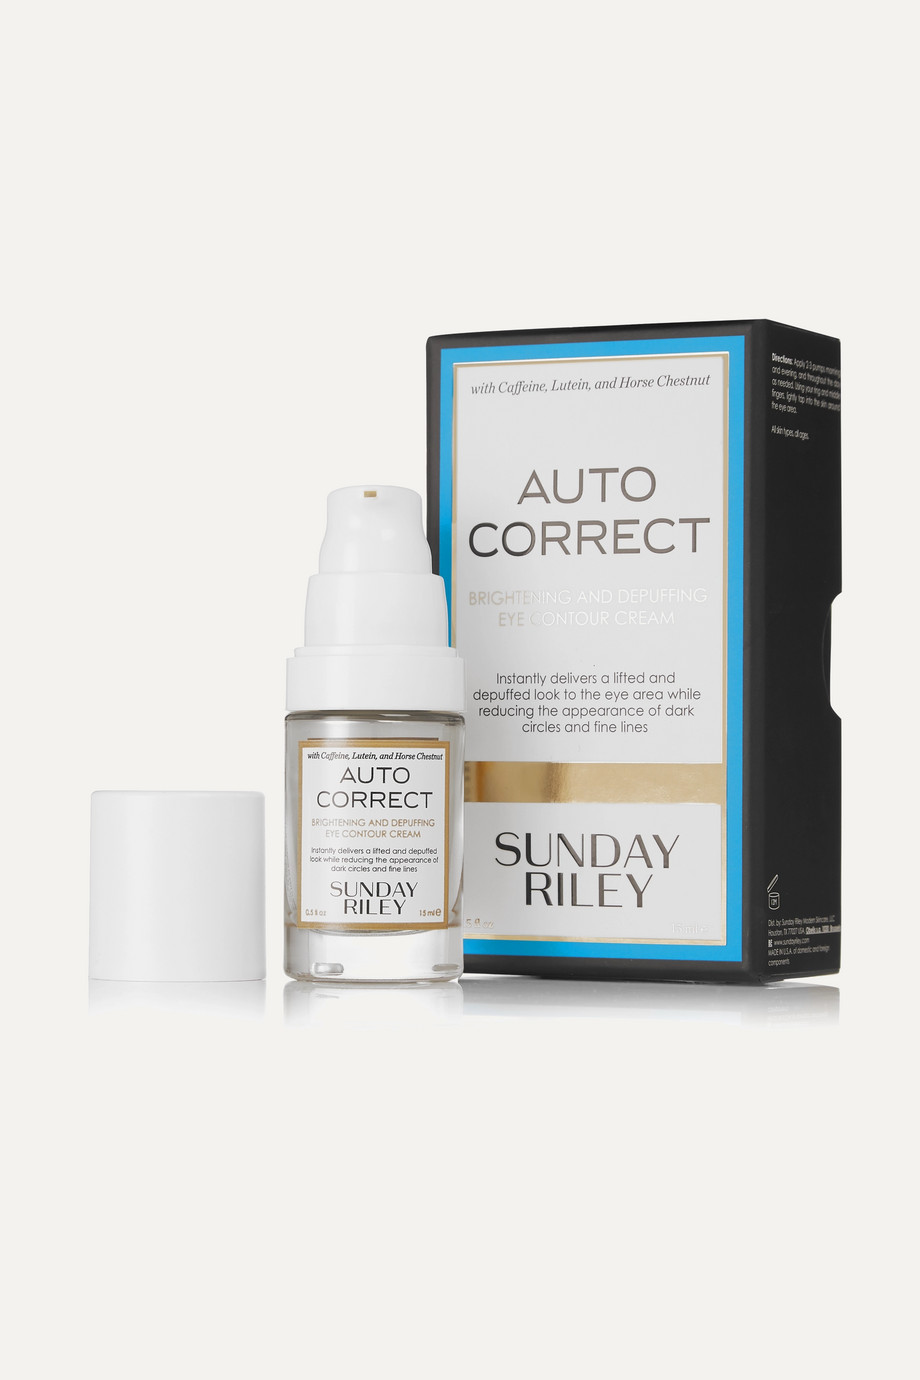 Sunday Riley Autocorrect Brightening and Depuffing Eye Contour Cream, 15ml